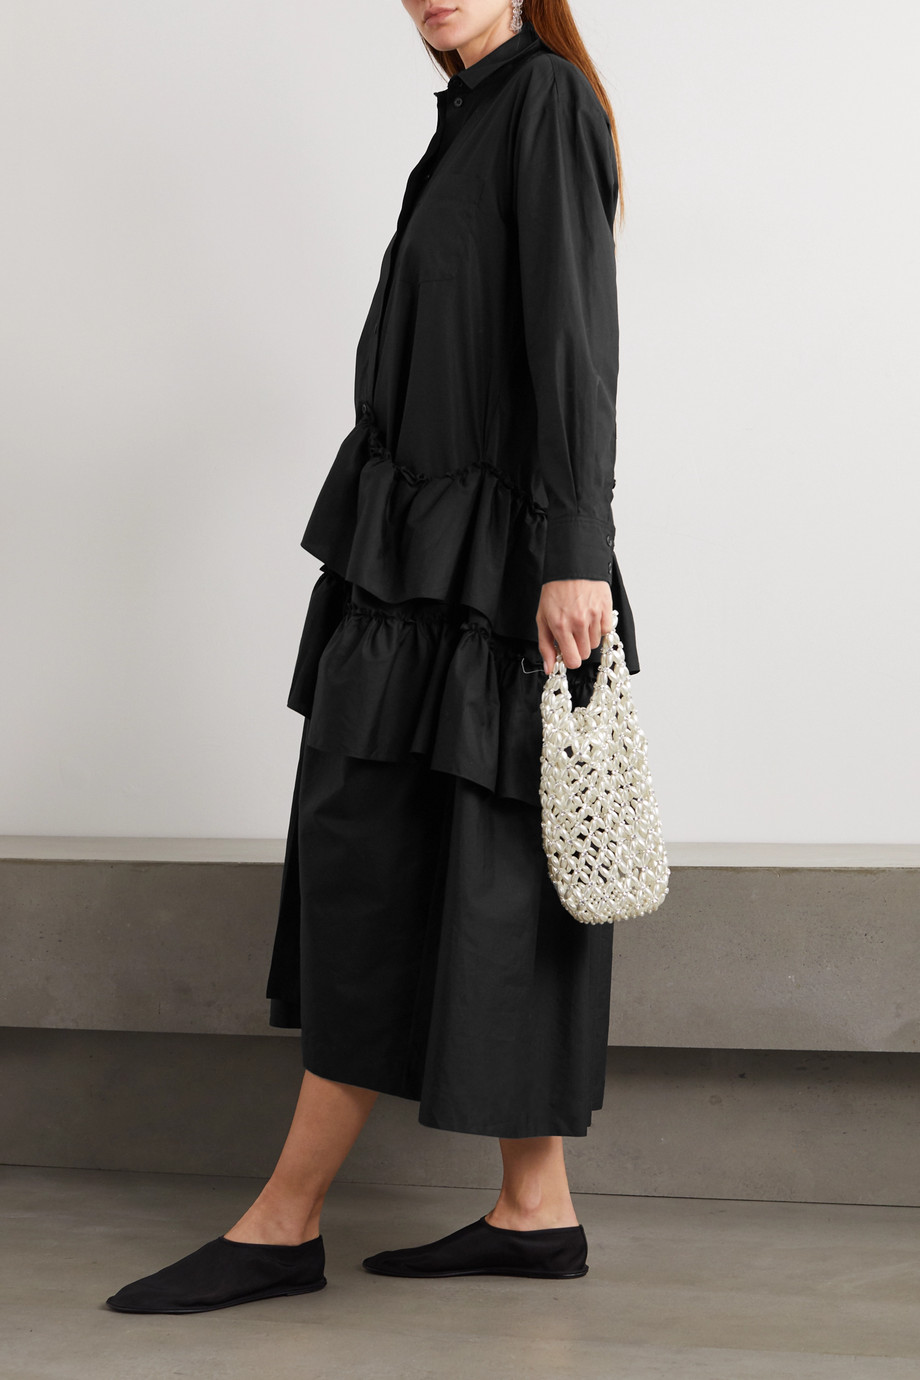 Simone Rocha Ruffled cotton-poplin shirt dress